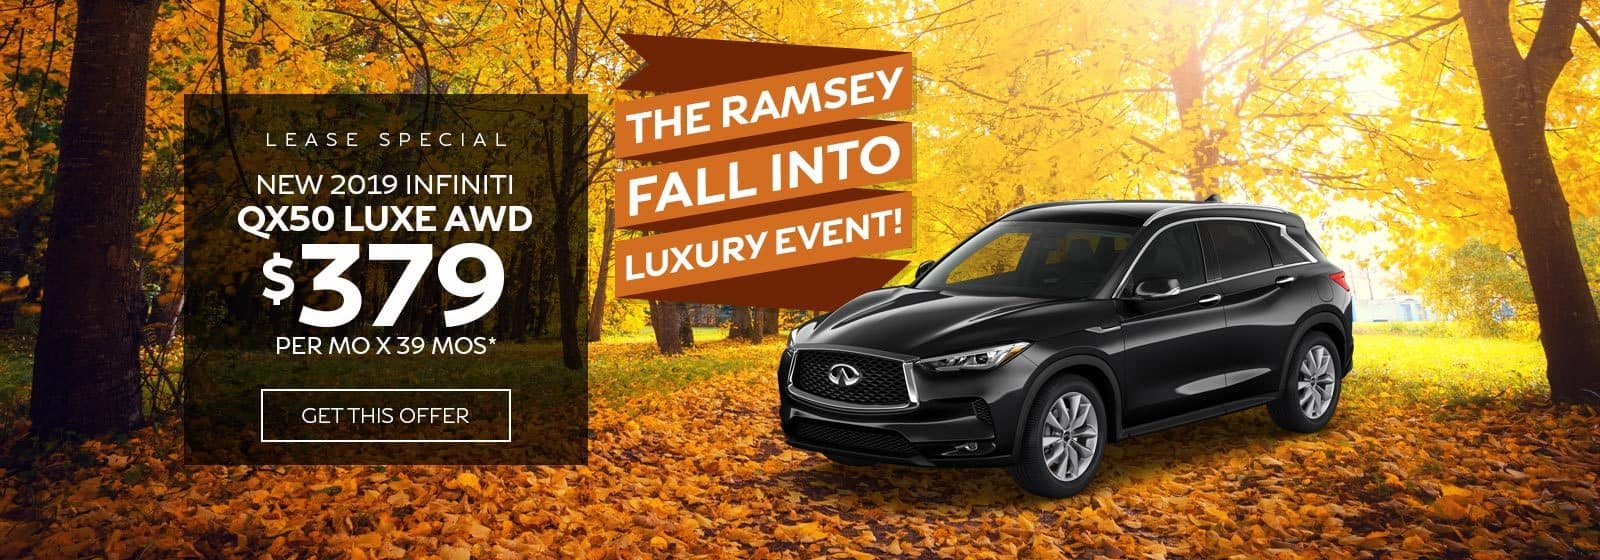 ramsey infiniti coupons